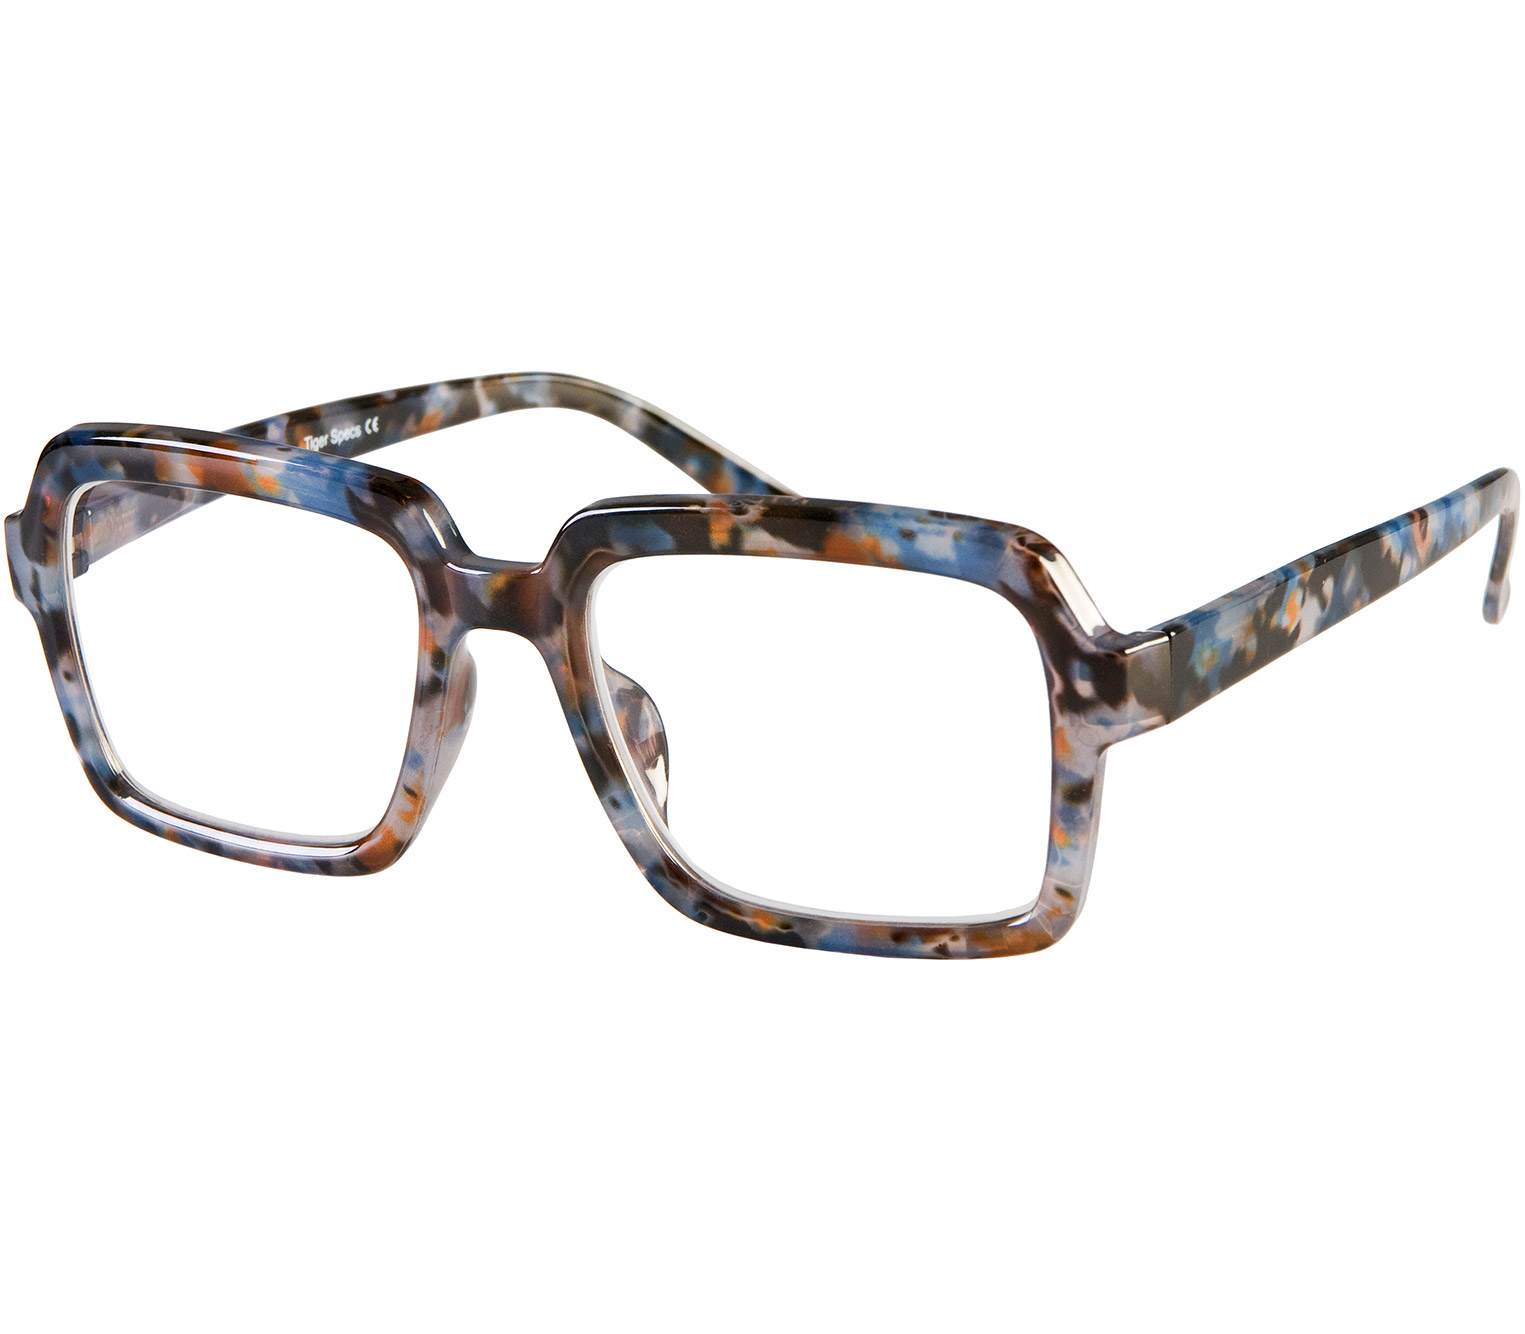 Main Image (Angle) - Downtown (Blue Tortoise) Retro Reading Glasses